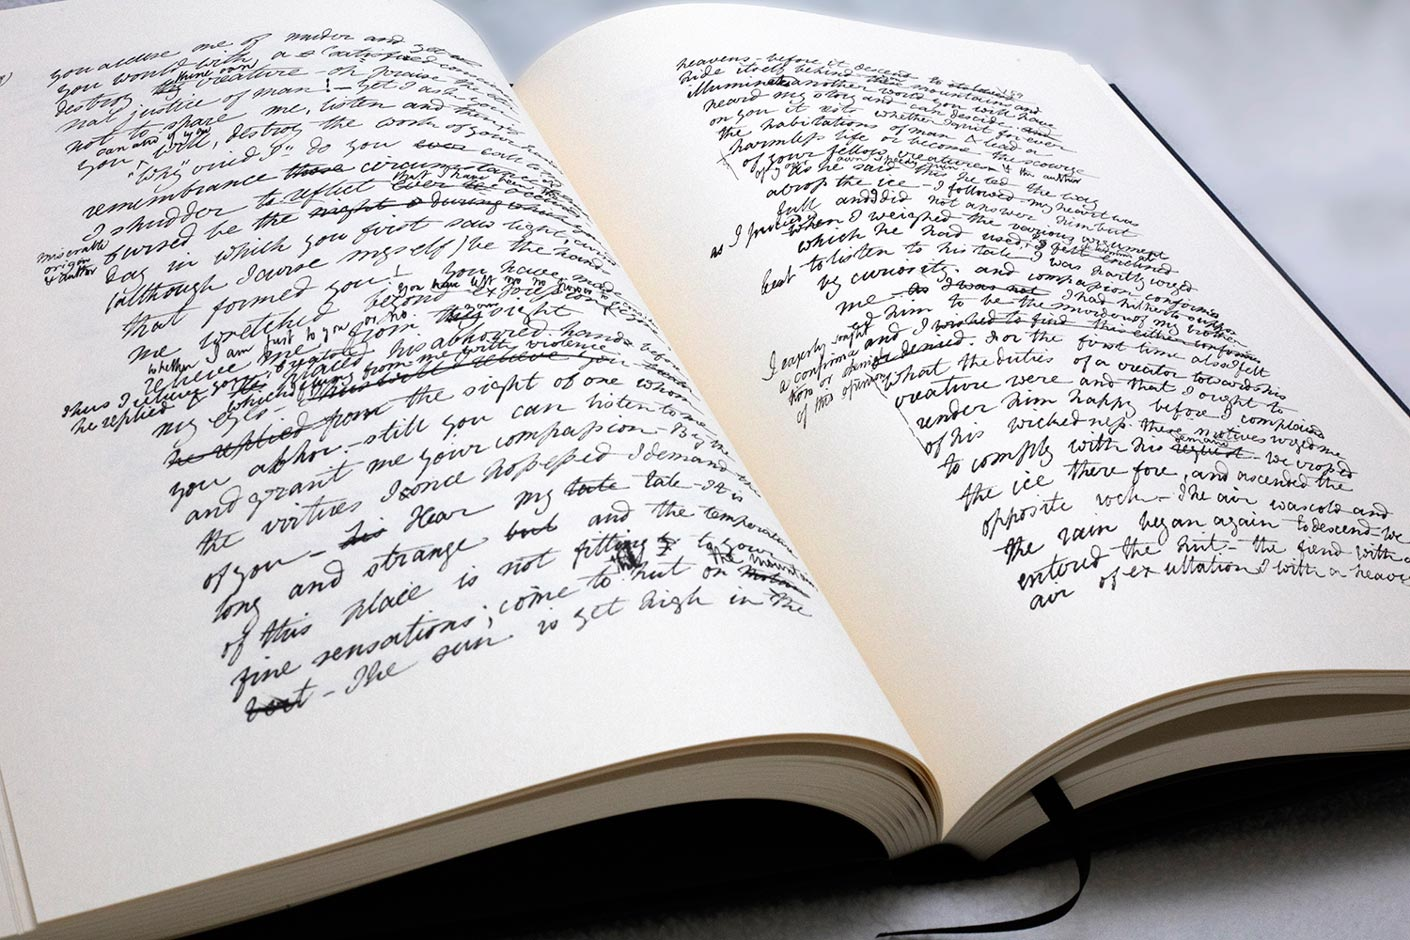 le manuscrit original de Frankenstein de Mary Shelley - livre ouvert